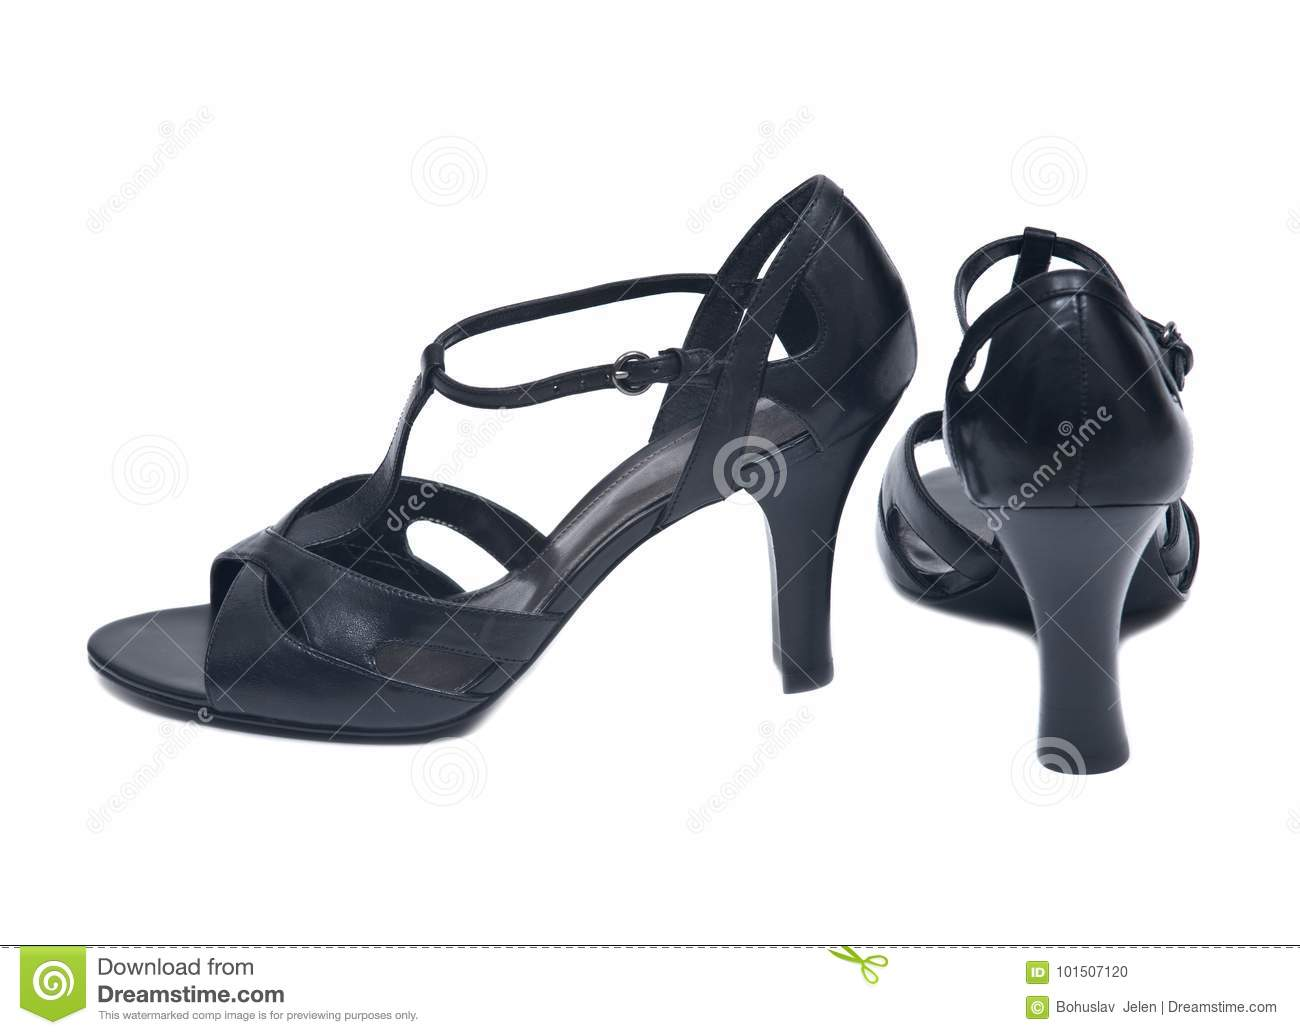 1851367e01e6 Black high hills elegant leather woman shoes isolated on white background.  More similar stock images